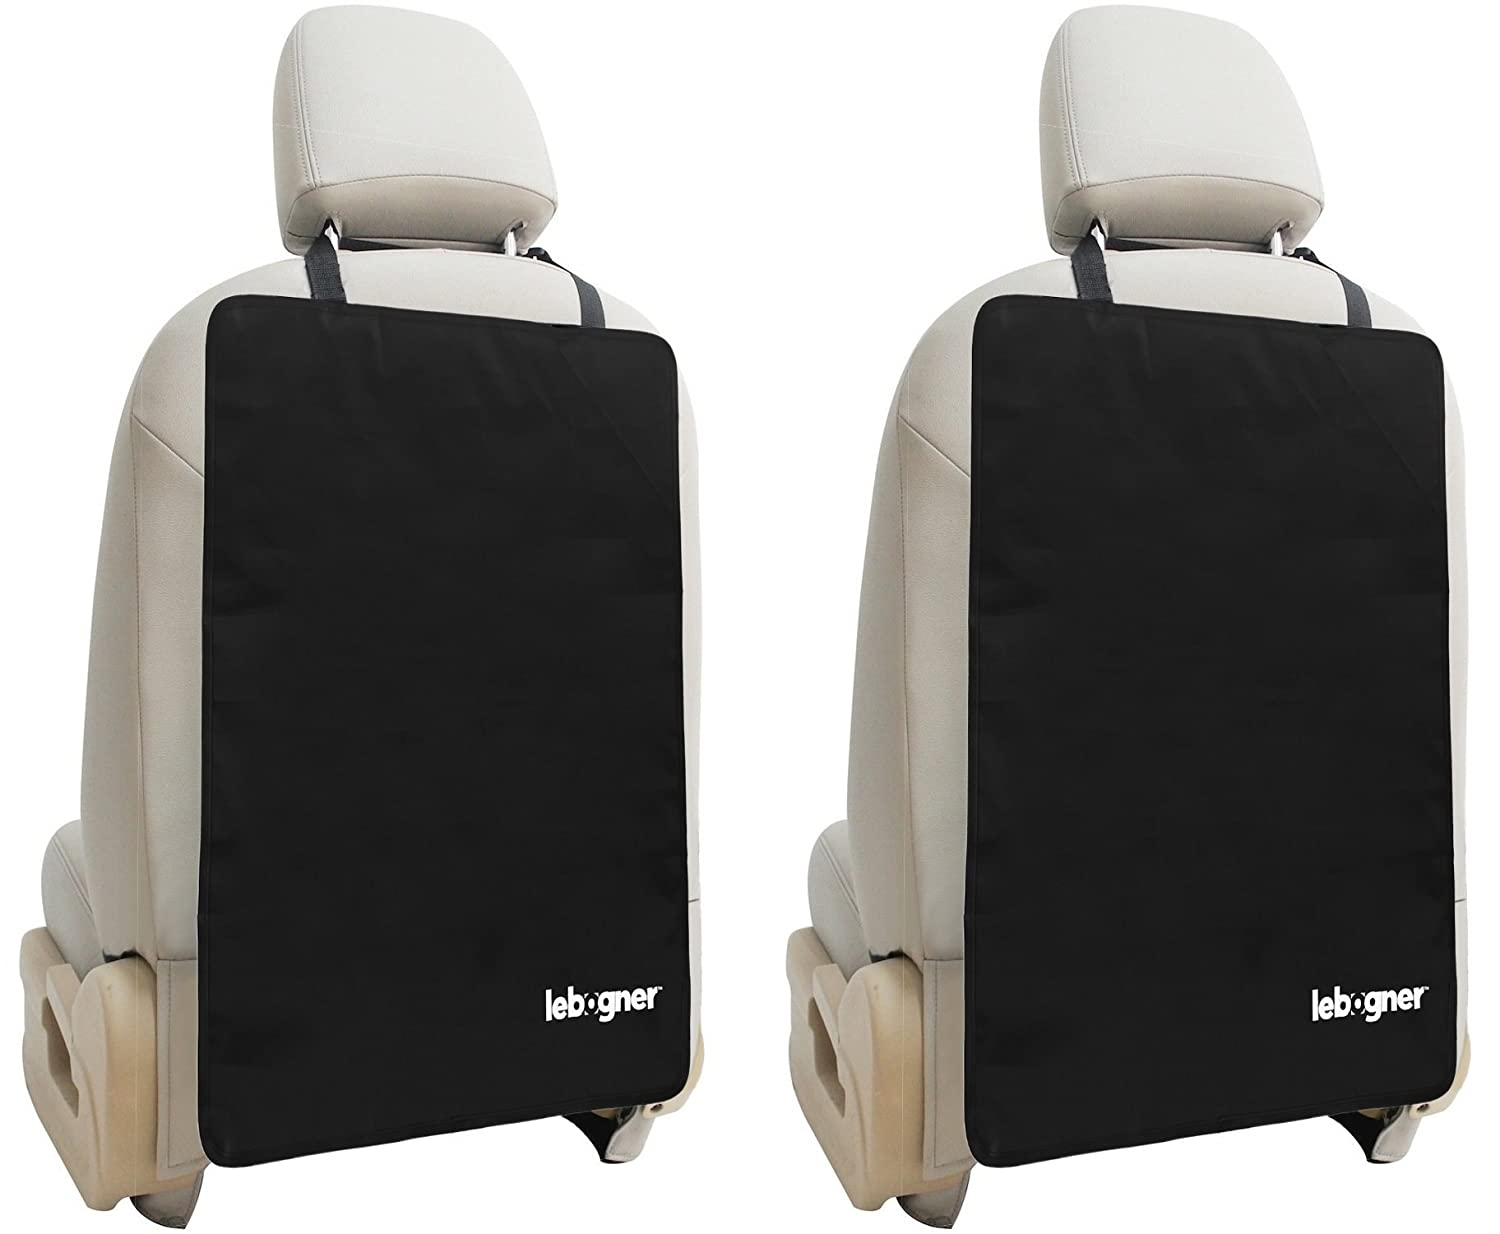 Car Seat Back Protectors By Lebogner - Luxury Kick Mat Seat Covers For The Back Of Your Front Seats 2 Pack, X-Large Auto Back Seat Protector Covers, Perfect Backseat Child Kick Guard Seat Saver LOR-A-1010